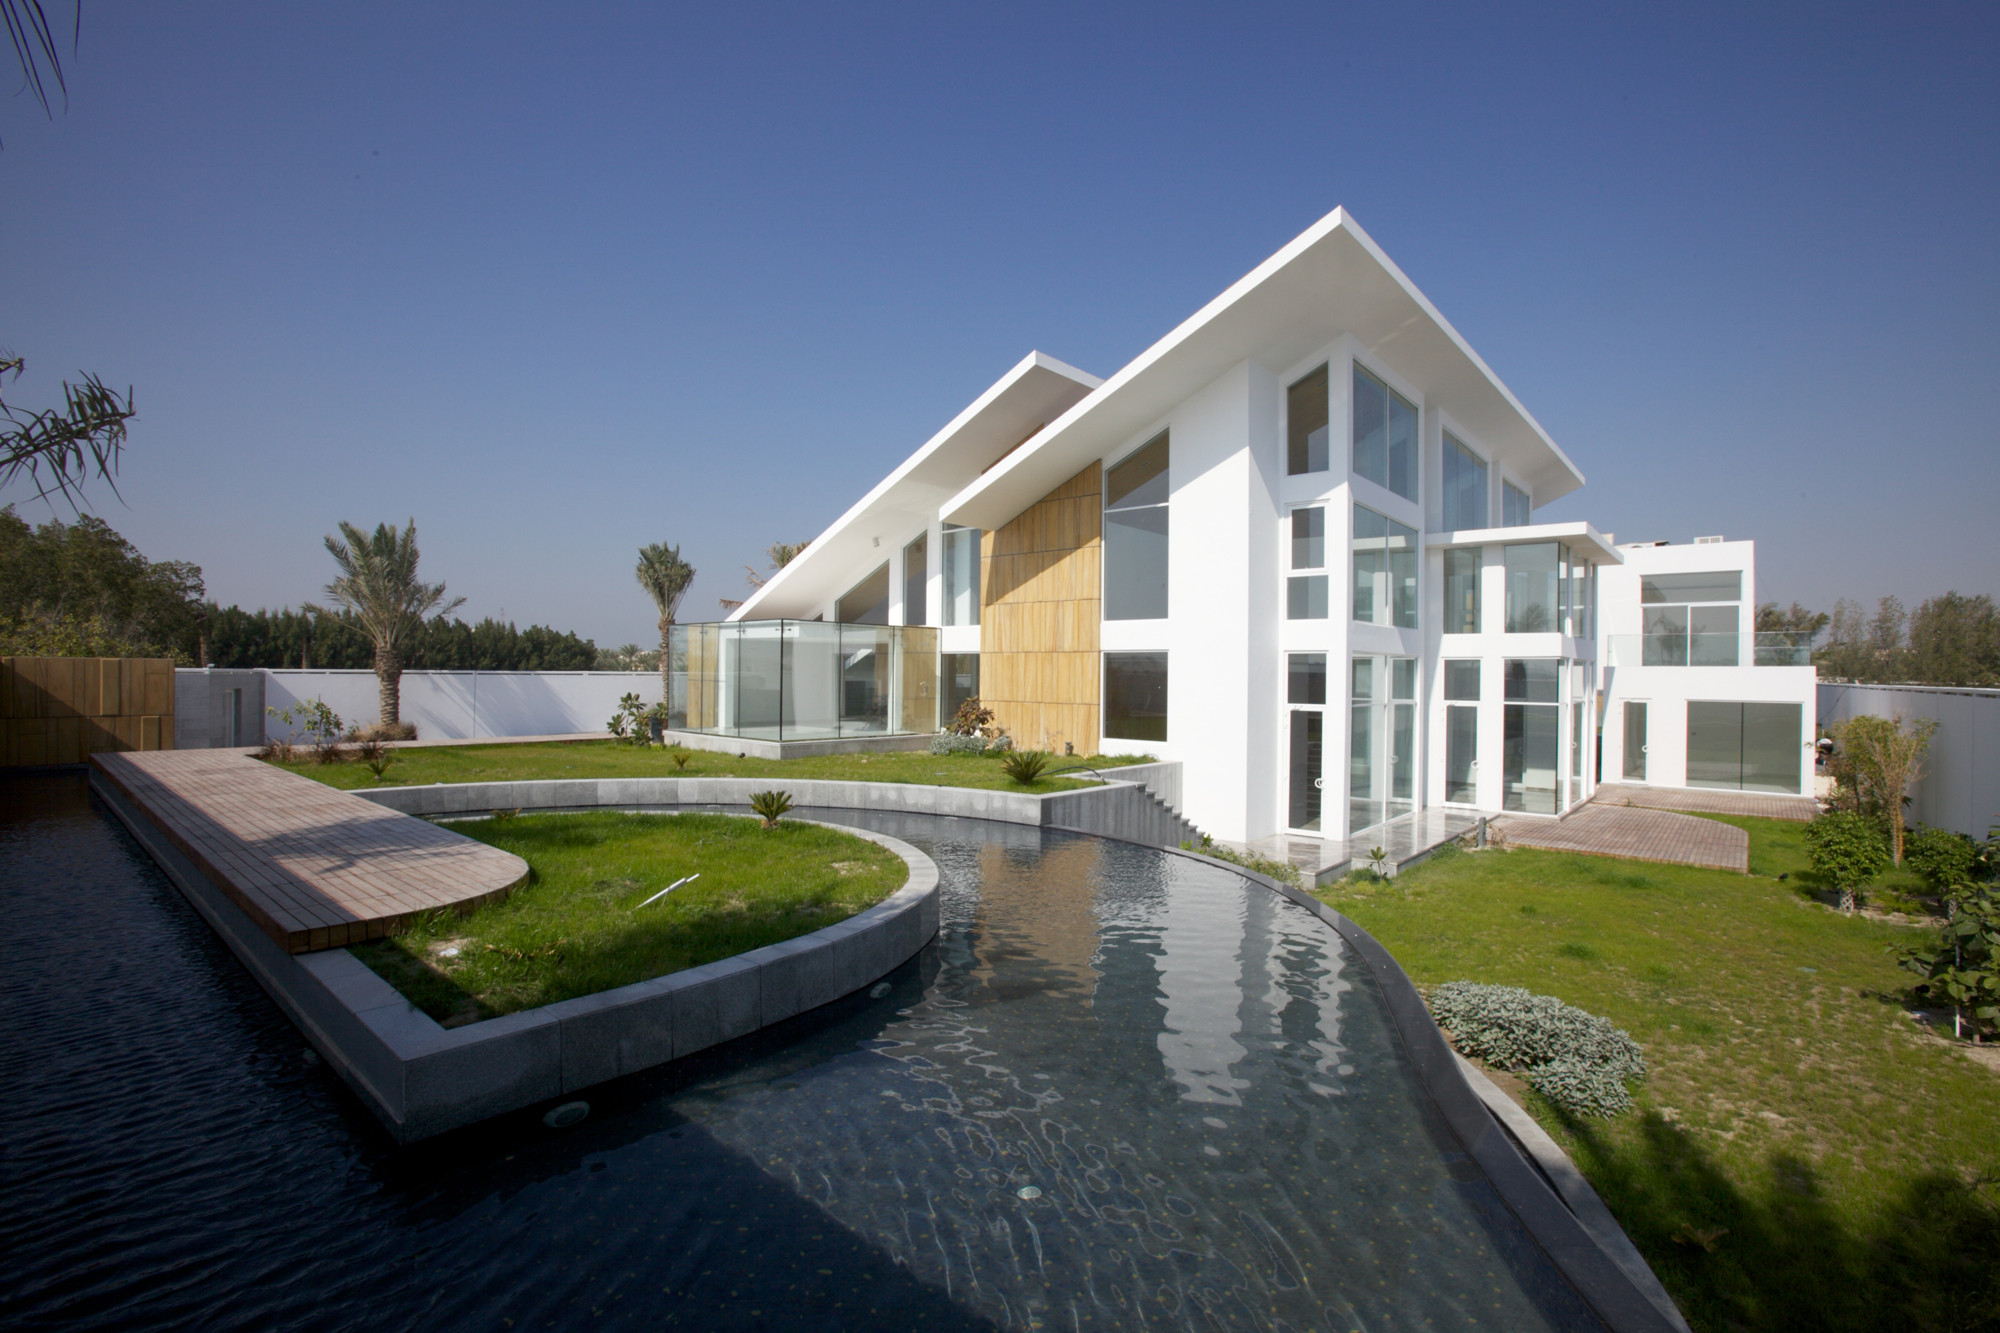 Bahrain House / MORIQ, Courtesy of MORIQ